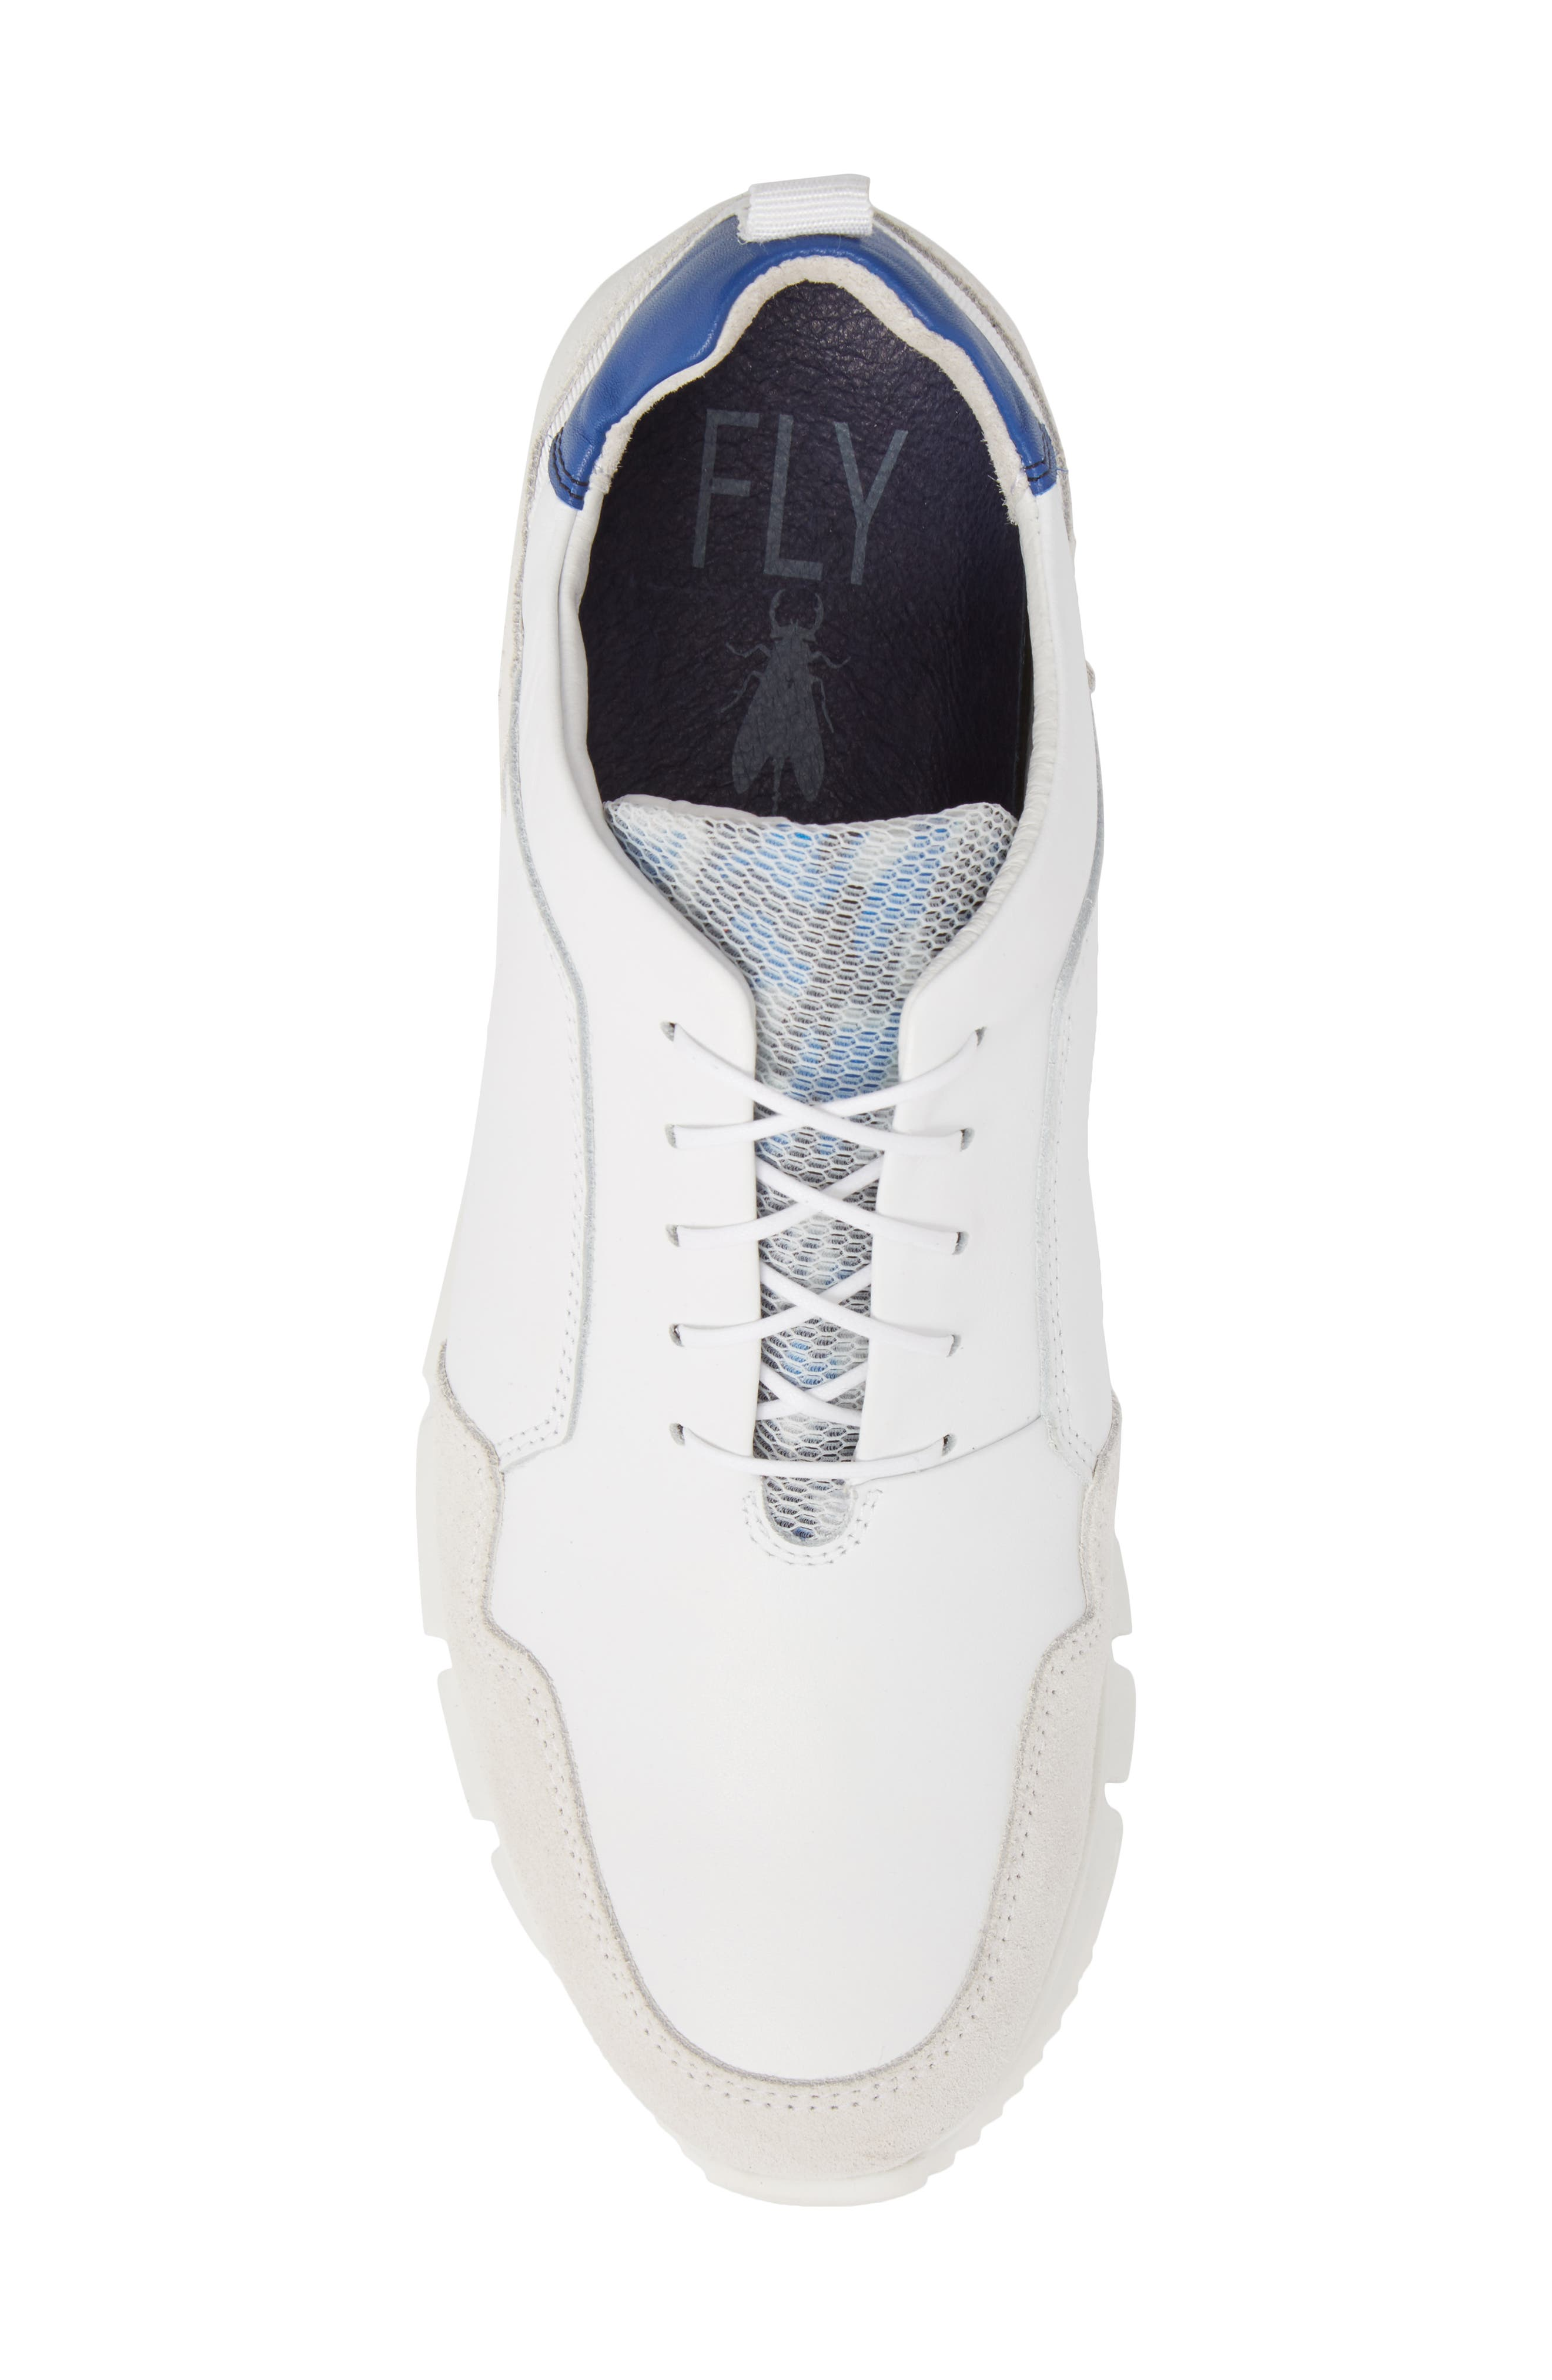 Sild Low Top Sneaker,                             Alternate thumbnail 5, color,                             WHITE SUEDE/ LEATHER